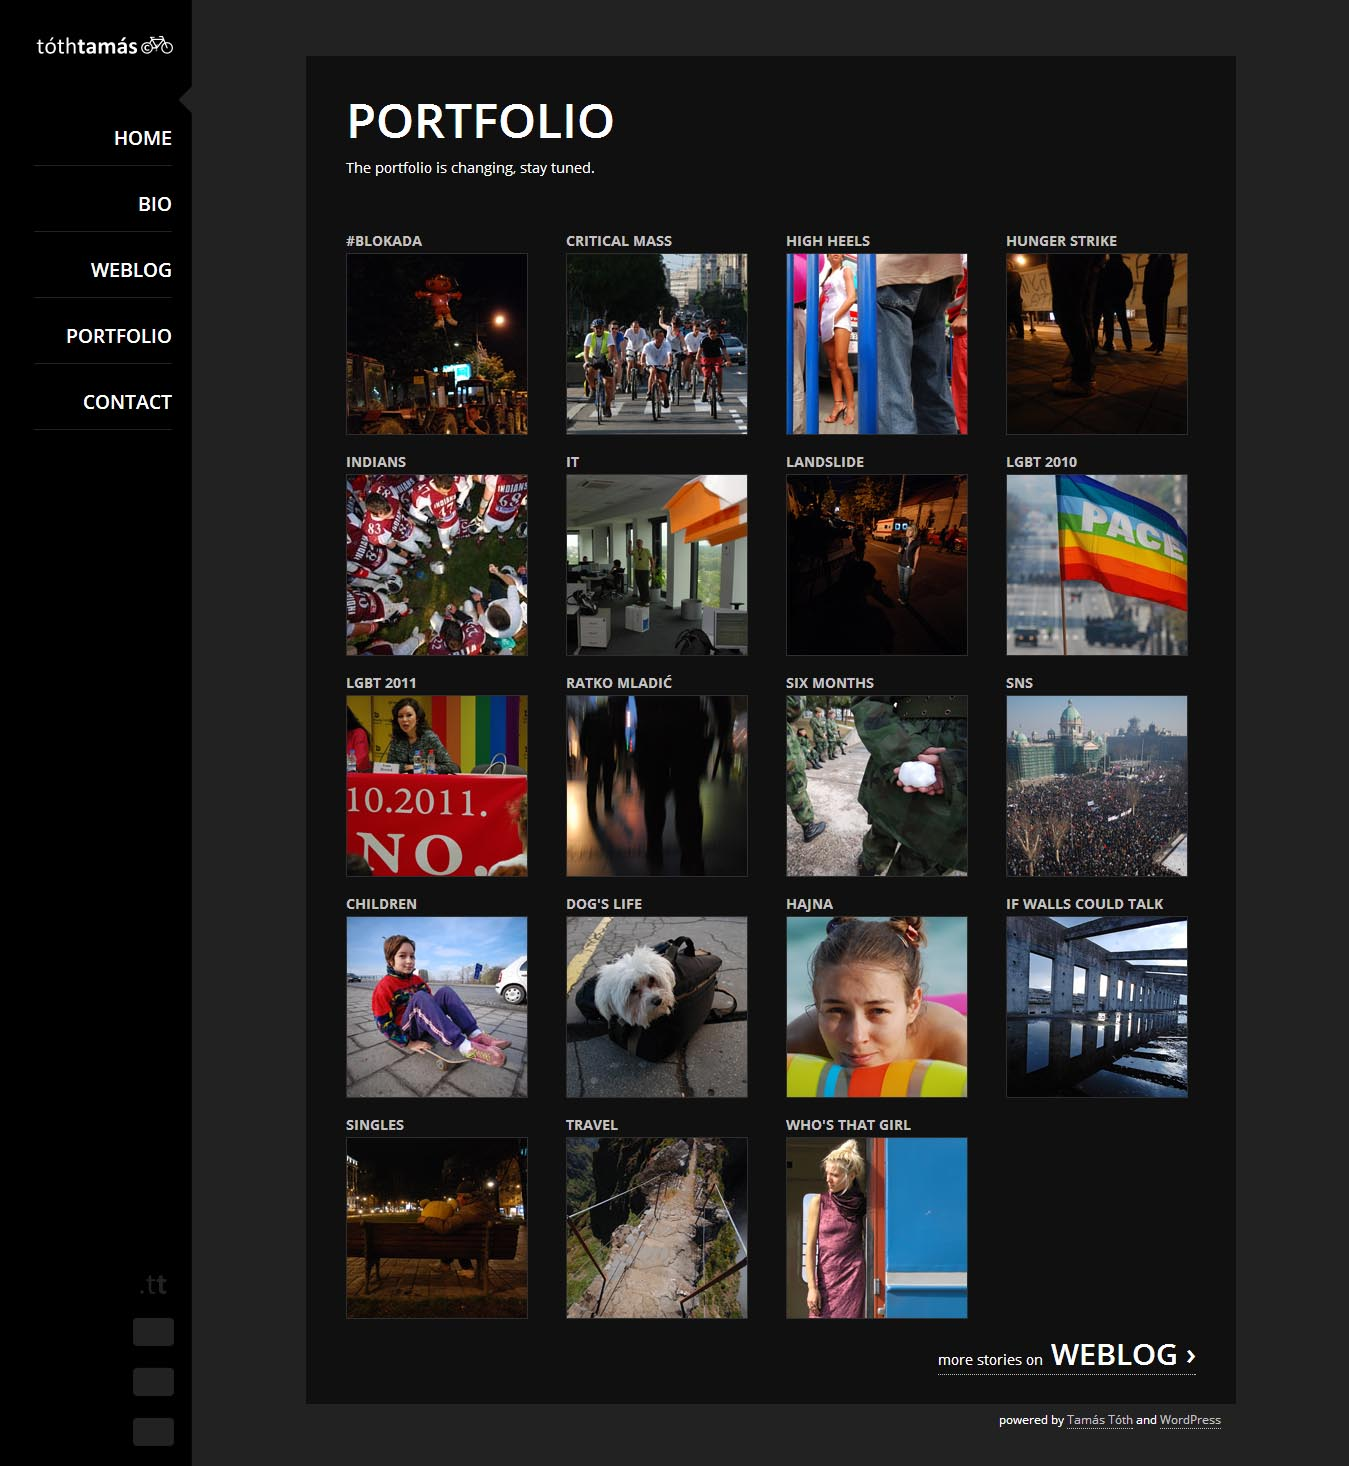 The old portfolio on the tothtamas.tt website